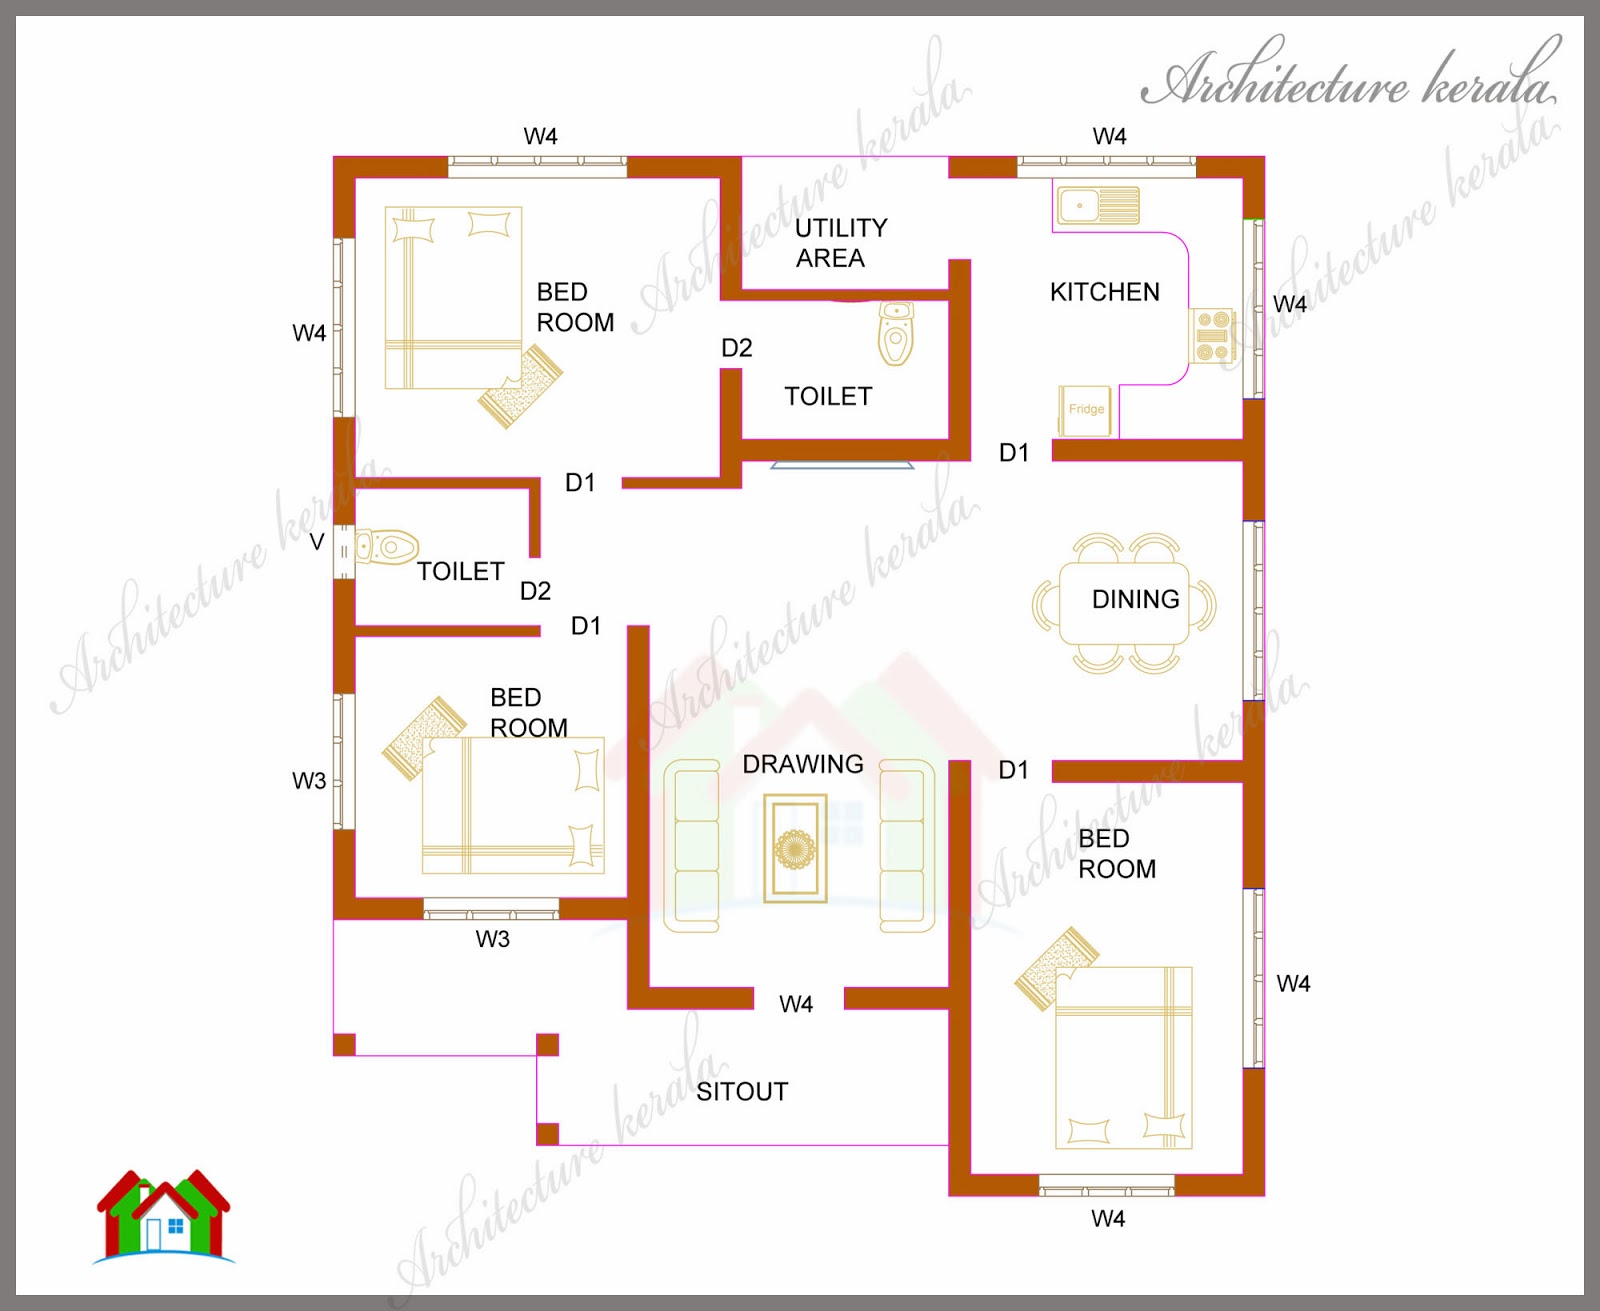 Kerala house plans sq ft arts split floor single ho home design 3000 square feet